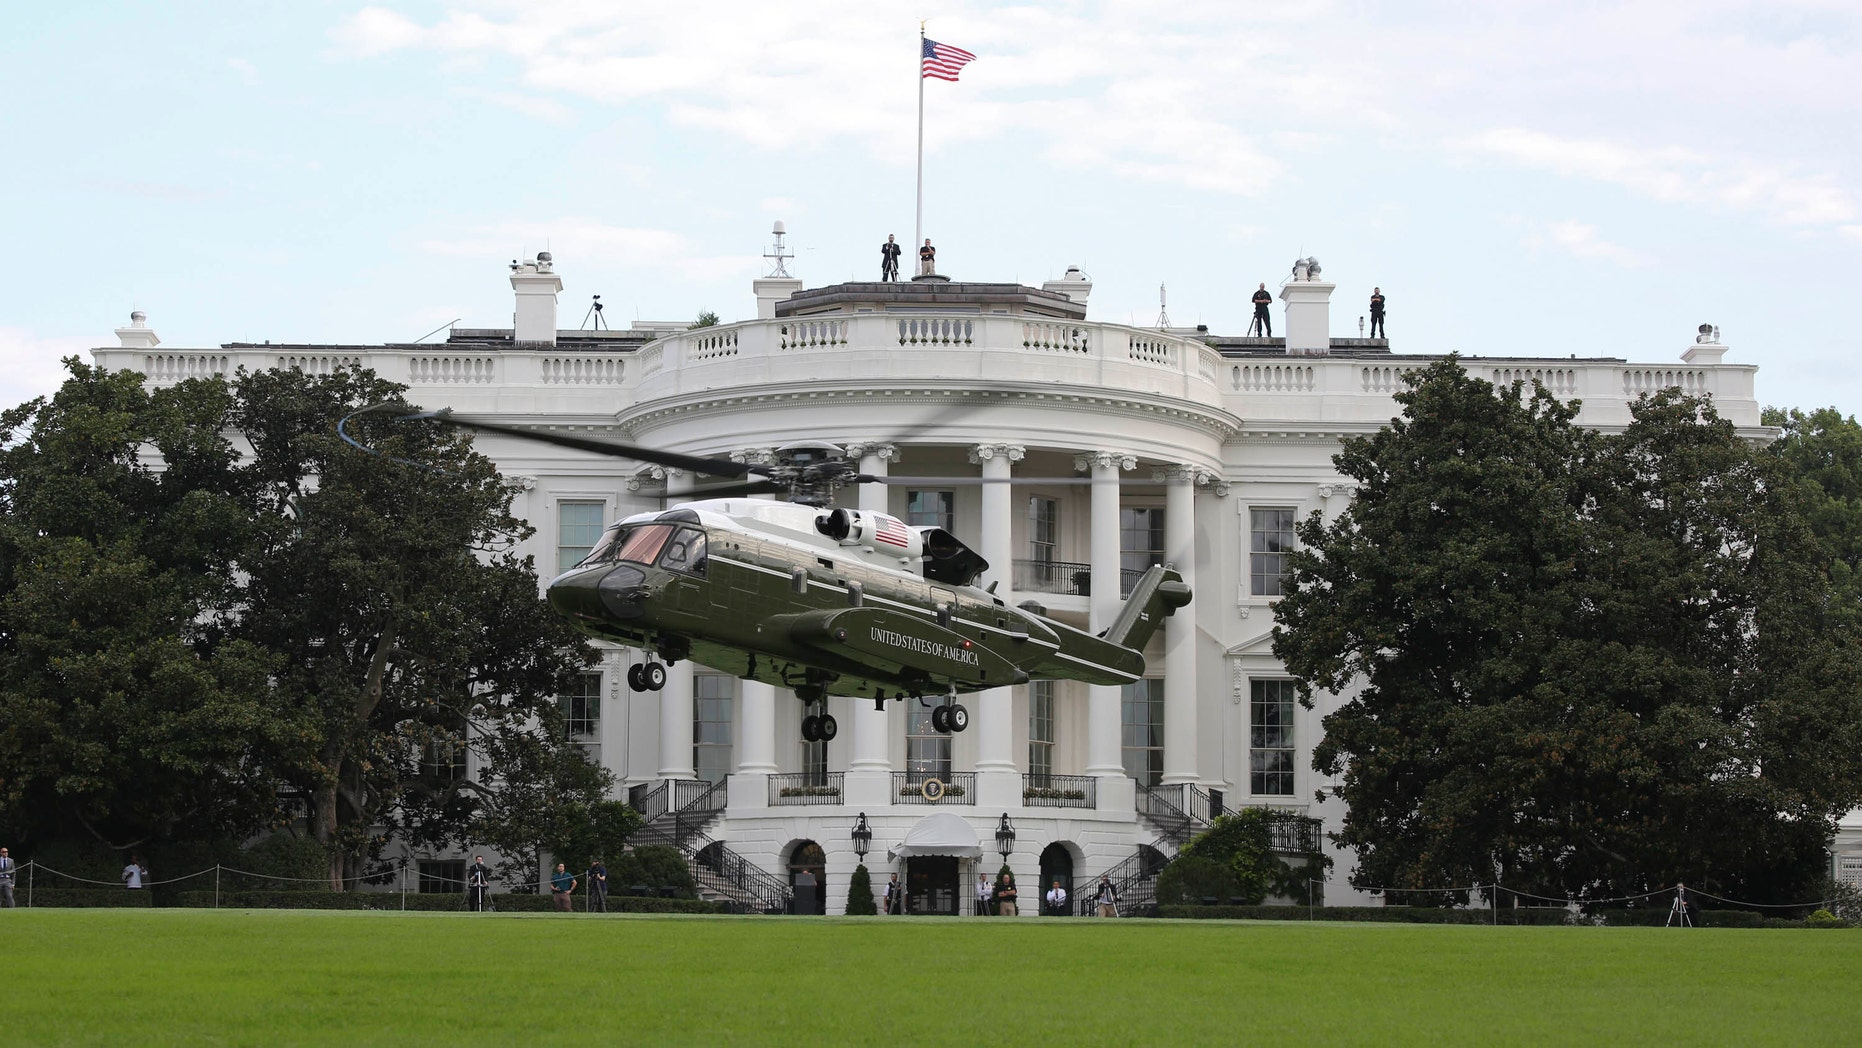 A developmental VH-92A helicopter conducts landing and take-off testing at the White House South Lawn on Sep. 22, 2018. (U.S. Marine Corps photo by Sgt. Hunter Helis)